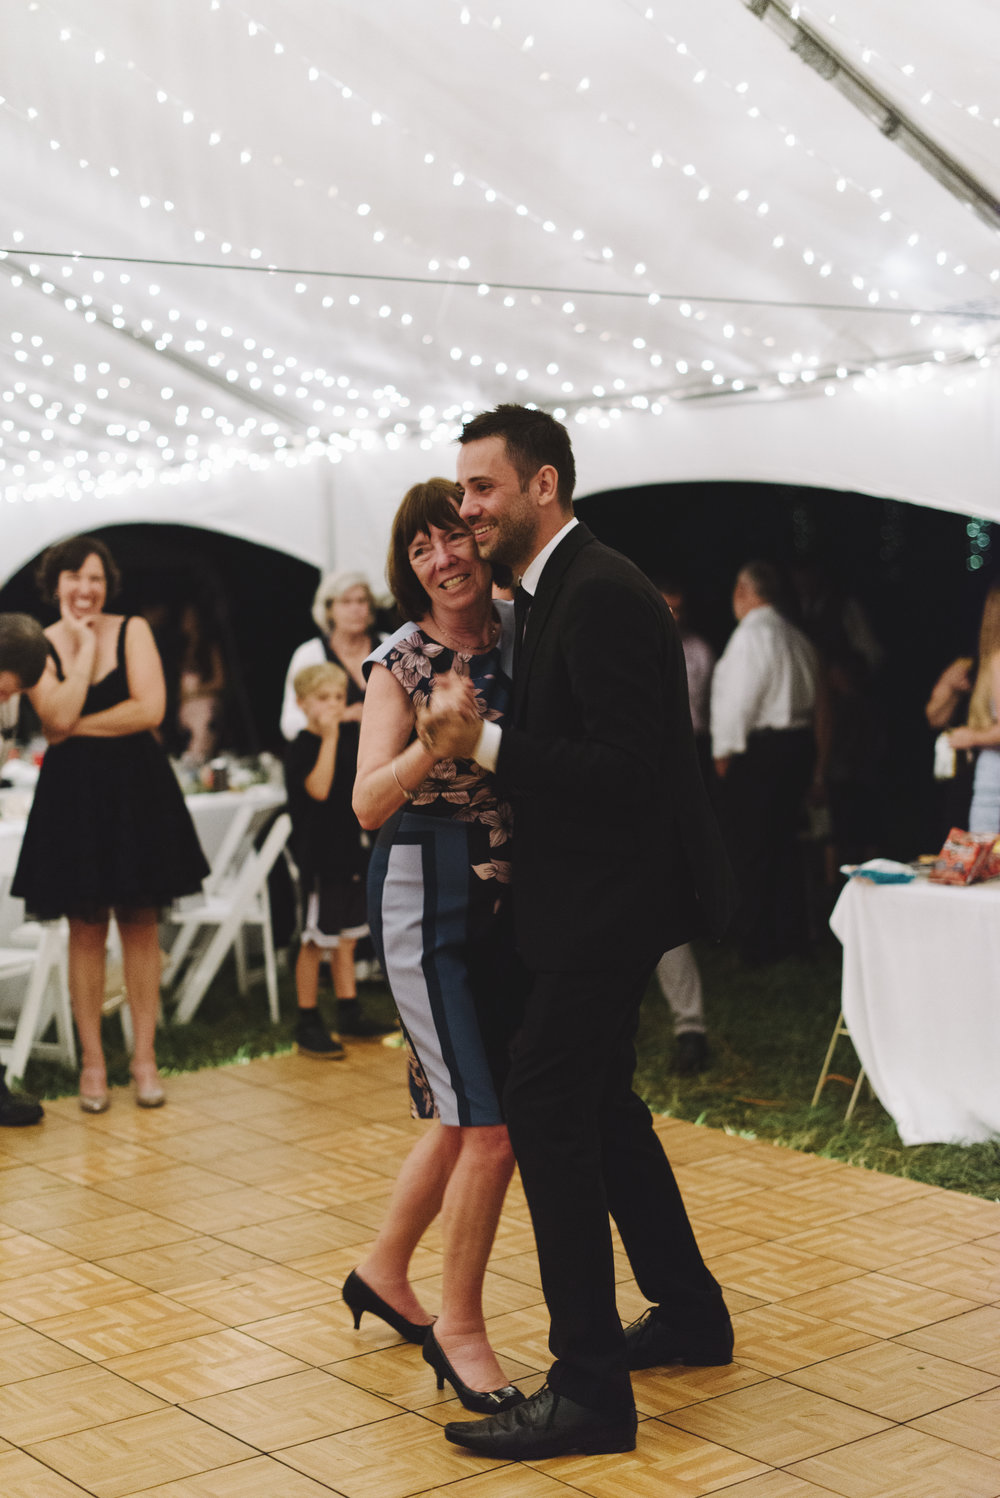 RosewoodWeddingPhotos-LondonWedding-KylieAlex-1435-SelfishThings-BohoFarmWedding-FirstDance-MotherSonDance